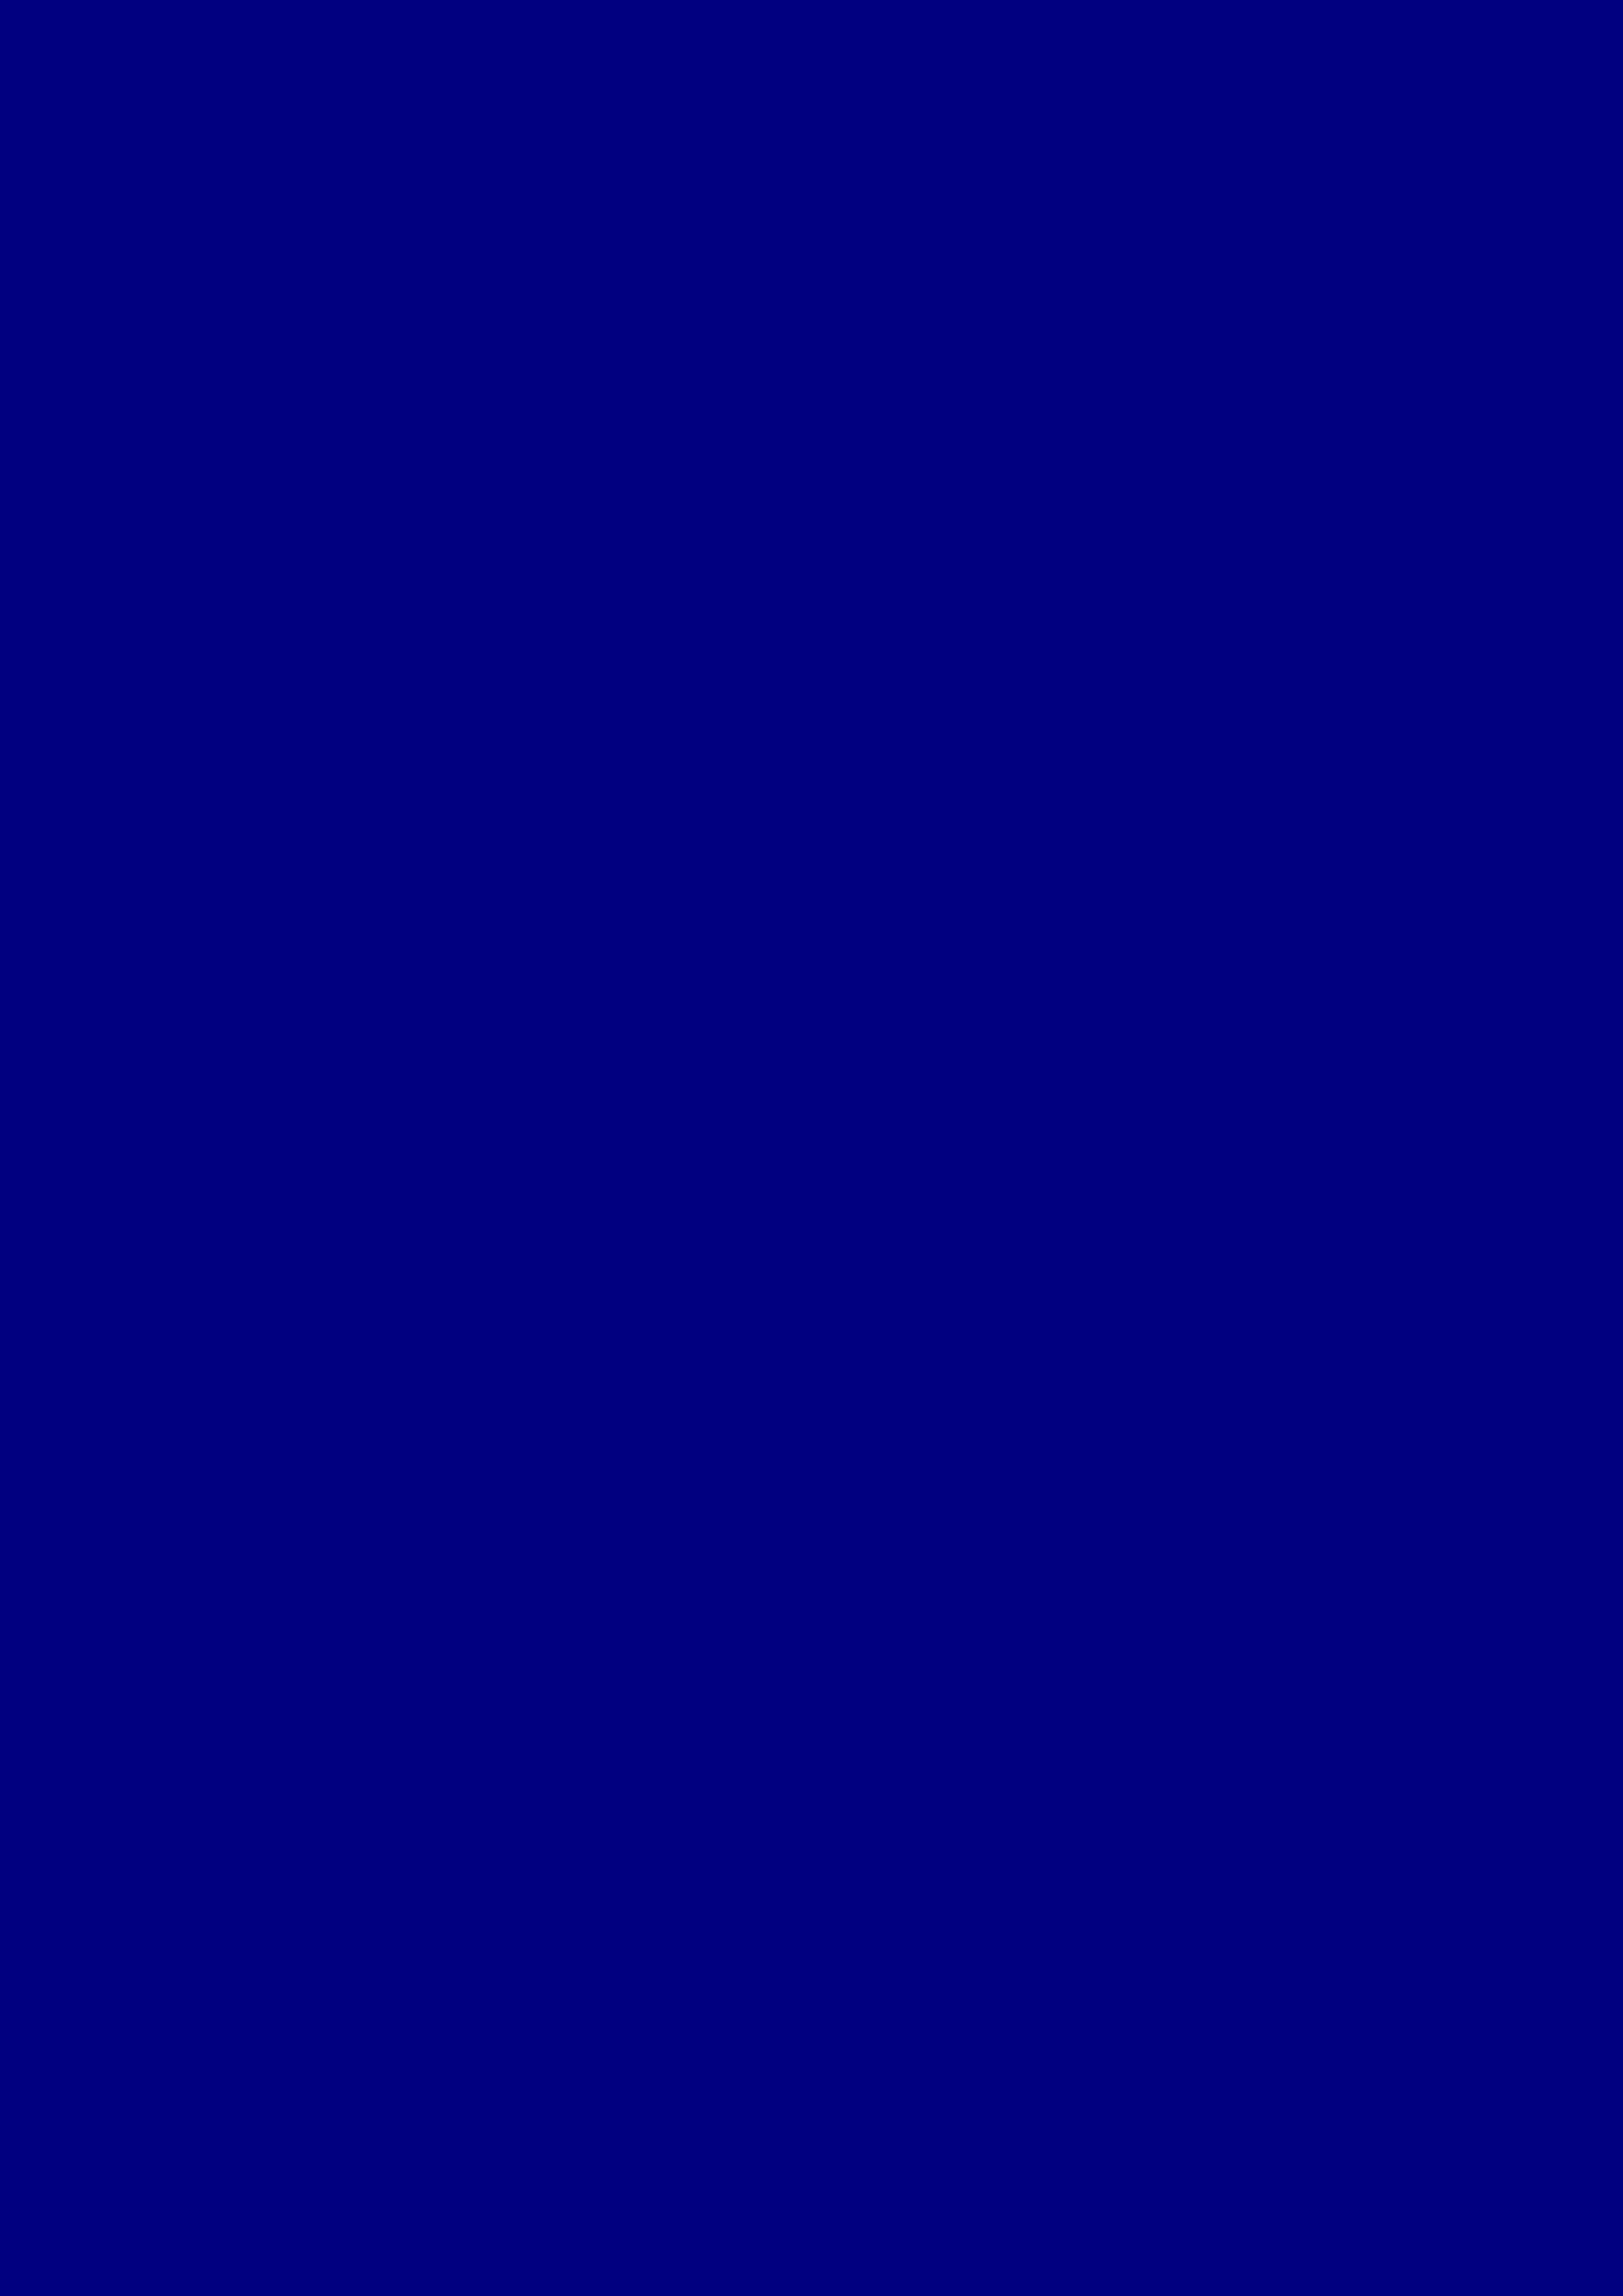 2480x3508 Navy Blue Solid Color Background